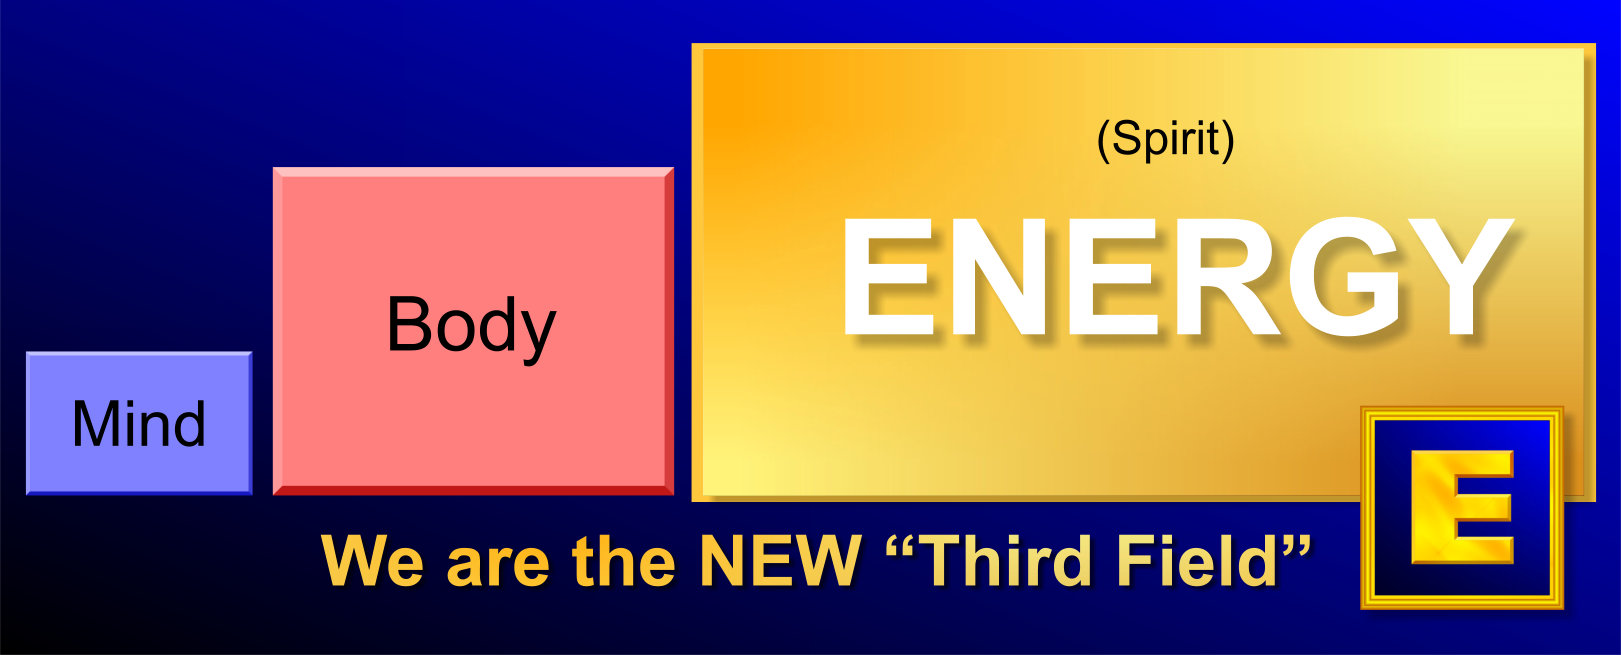 Diagram showing mind, body and the third field of energy